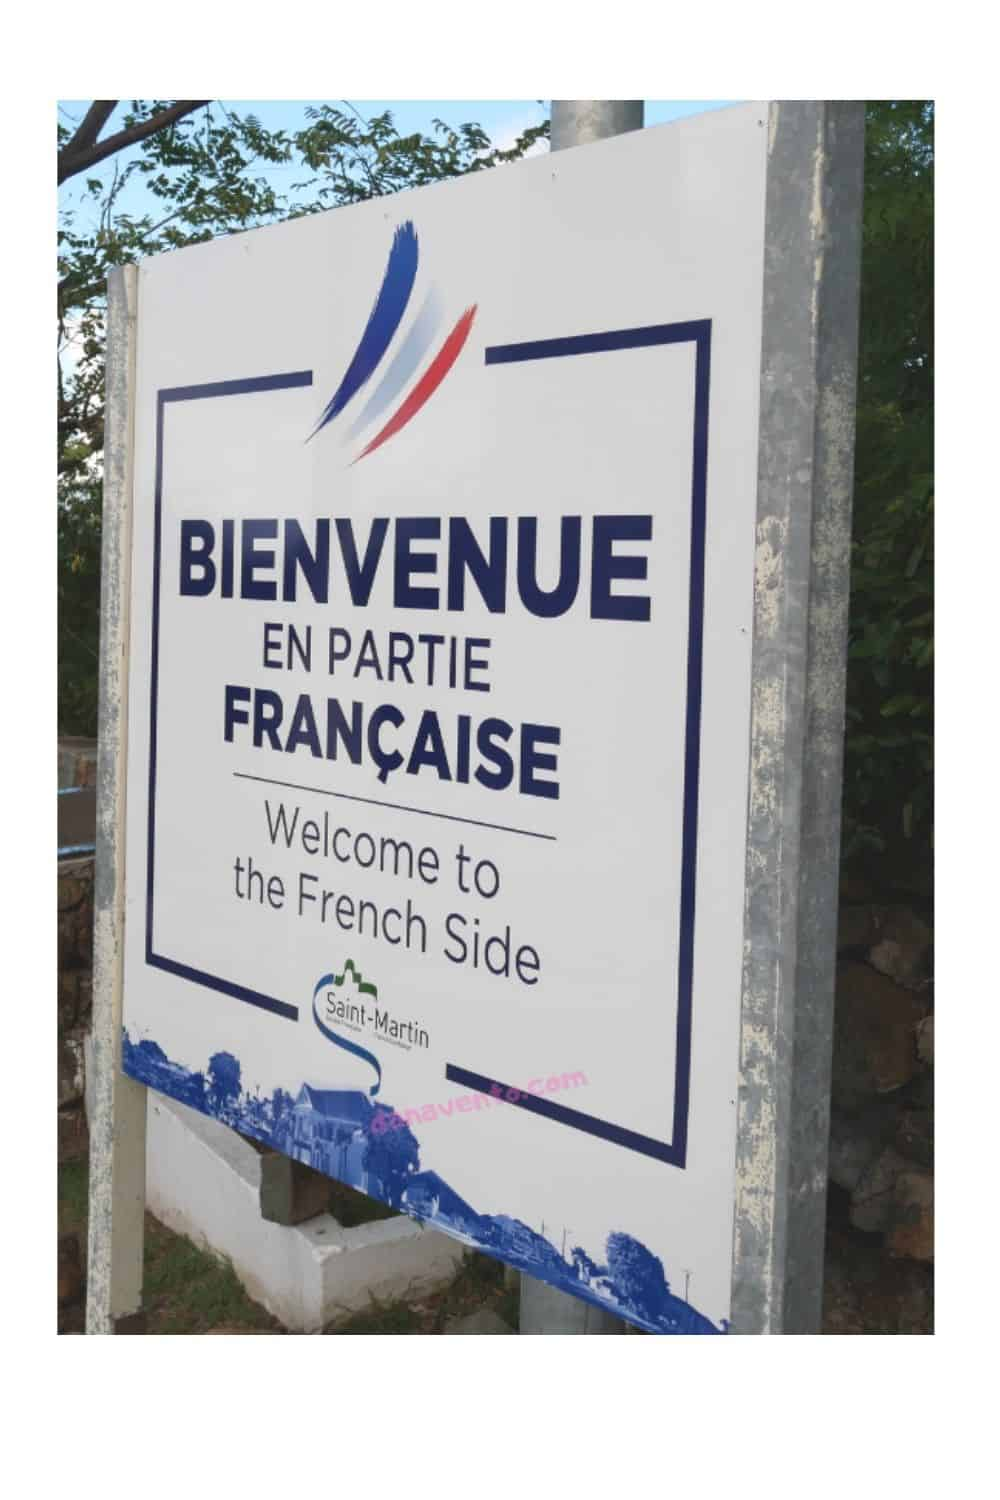 The French Side Sign in SXM